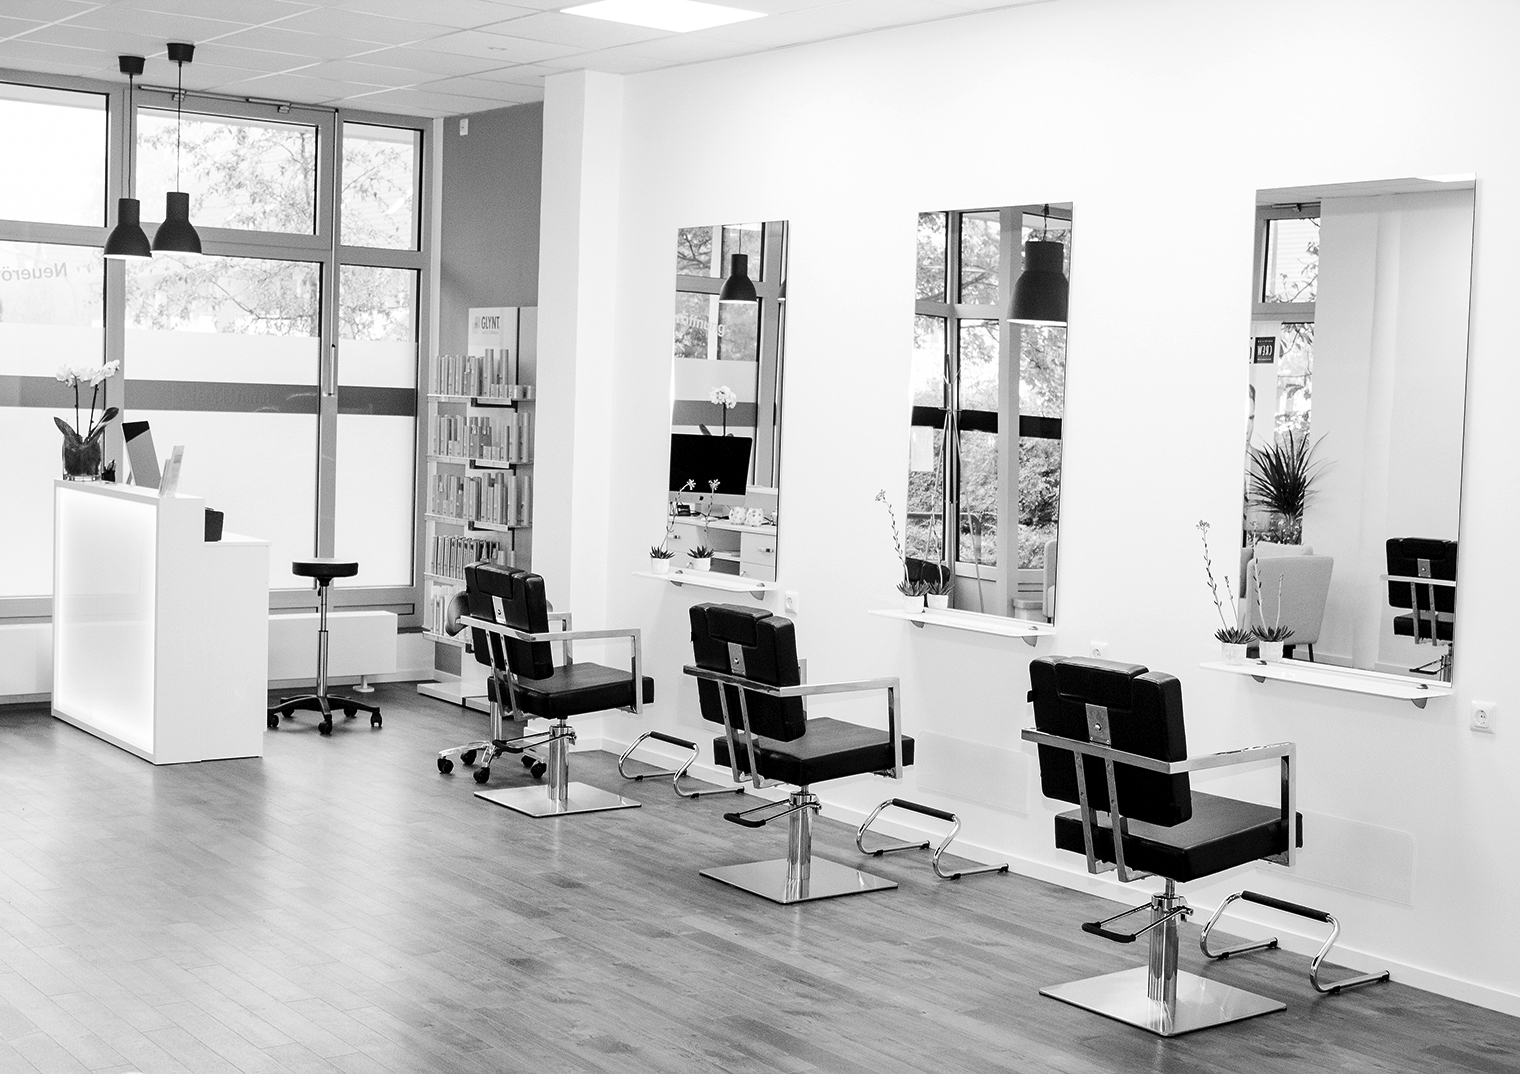 Salon Timm Hüge